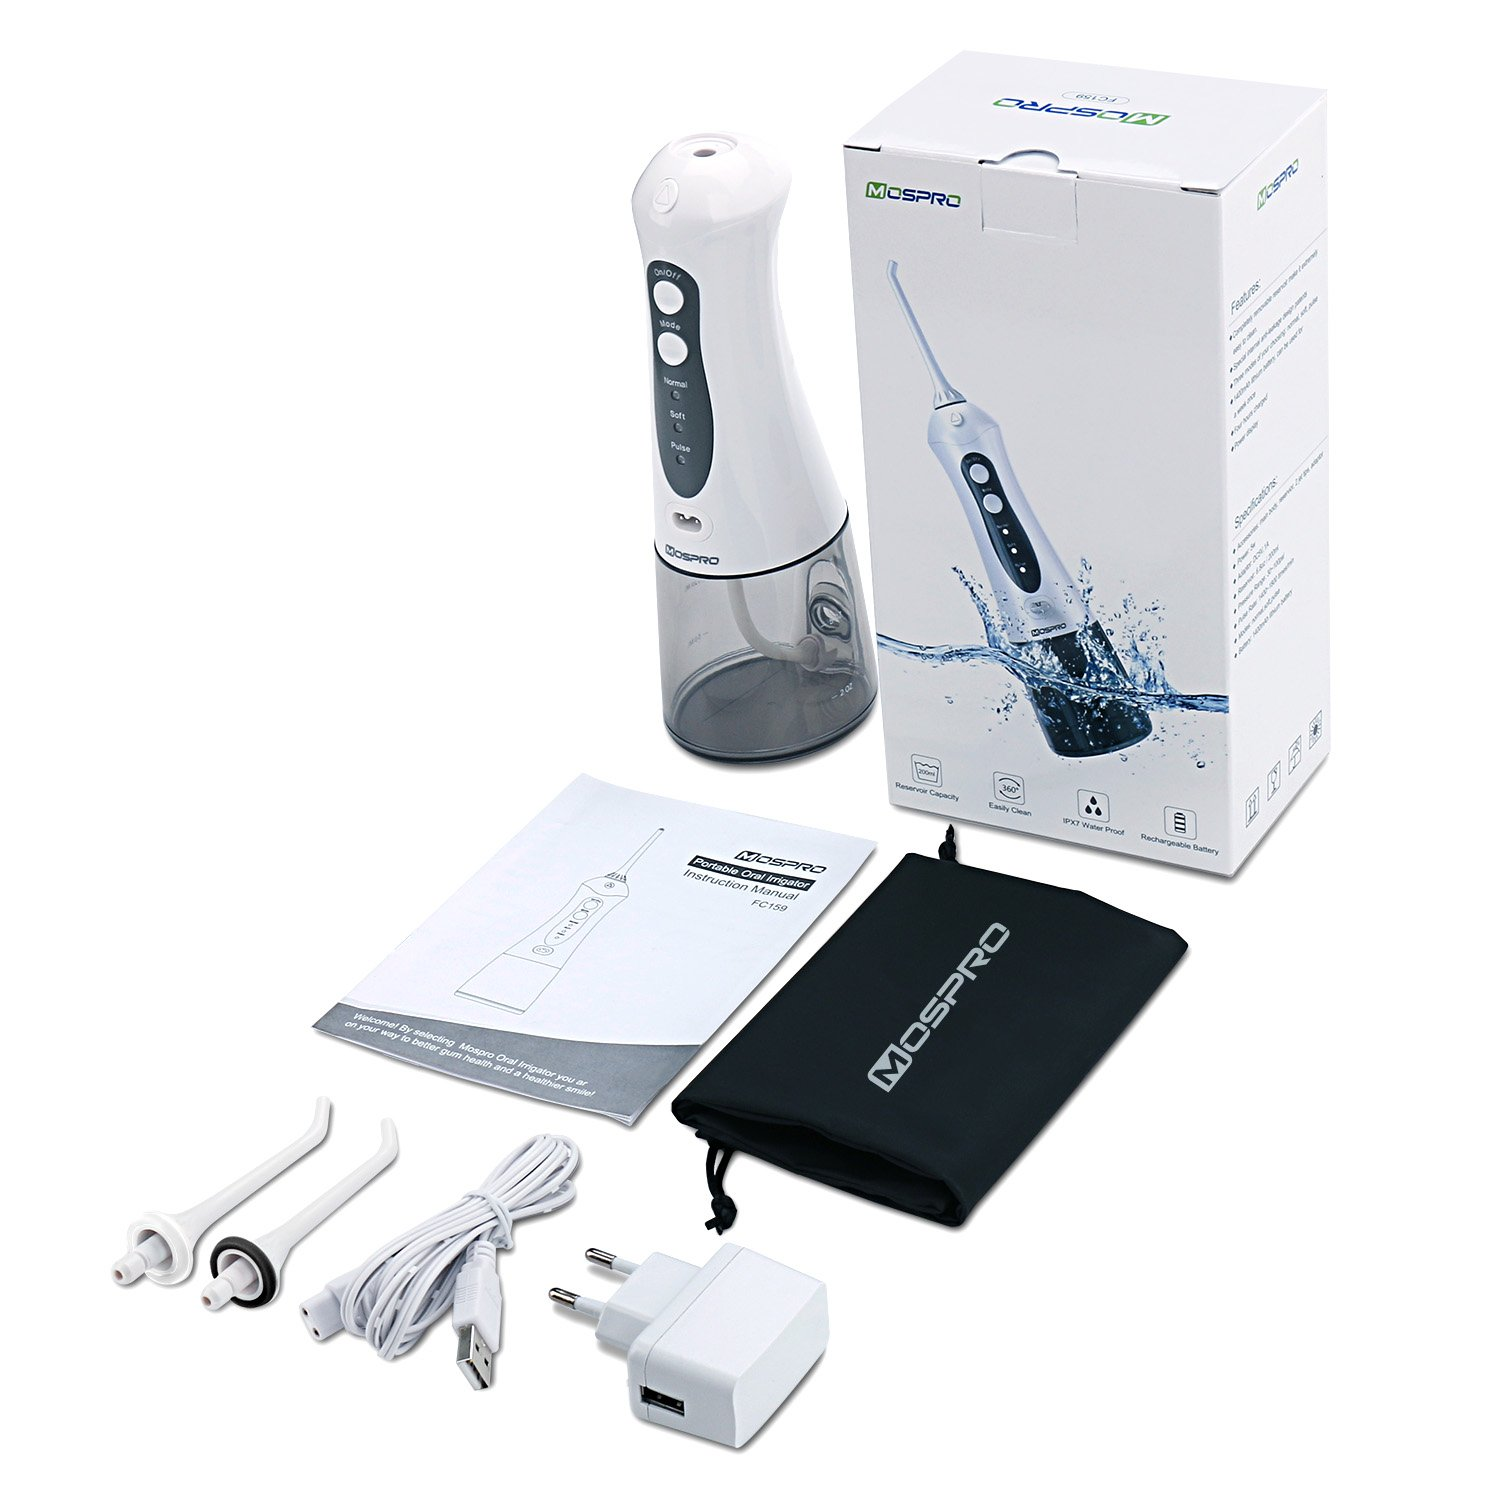 Water Flosser Professional Cordless Dental Oral Irrigator - Portable and Rechargeable IPX7 Waterproof 3 Modes Water Flossing with Cleanable Water Tank for Home and Travel, Braces & Bridges Care by MOSPRO (Image #8)